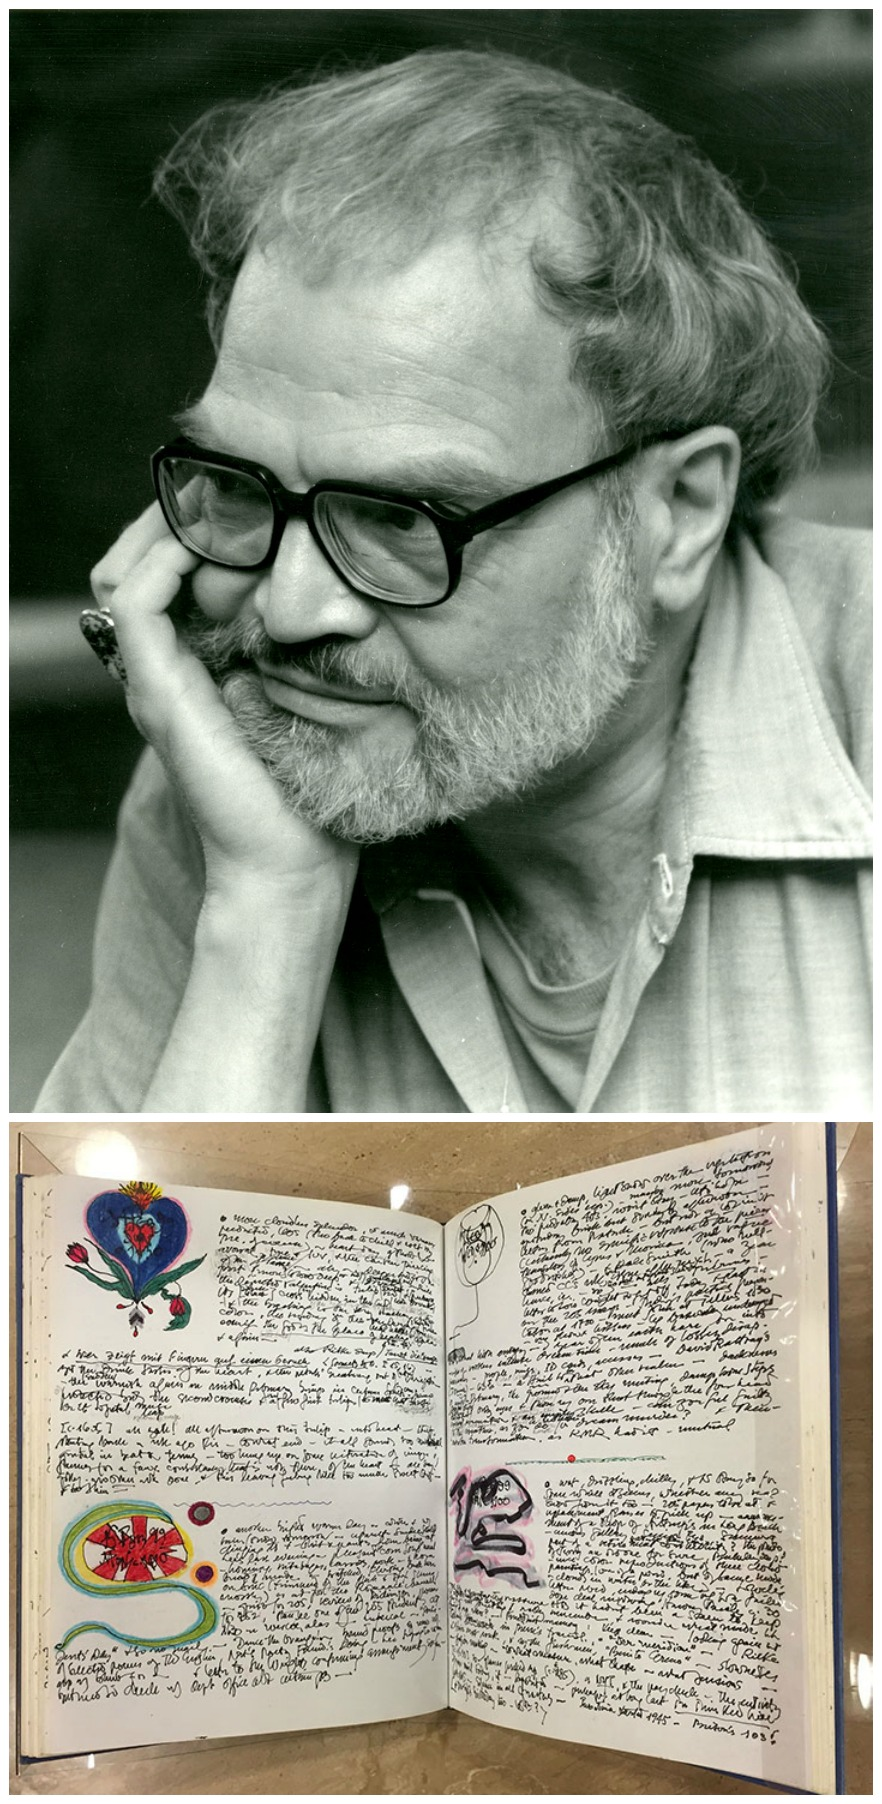 Image of late poet Kenneth Irby and his journal